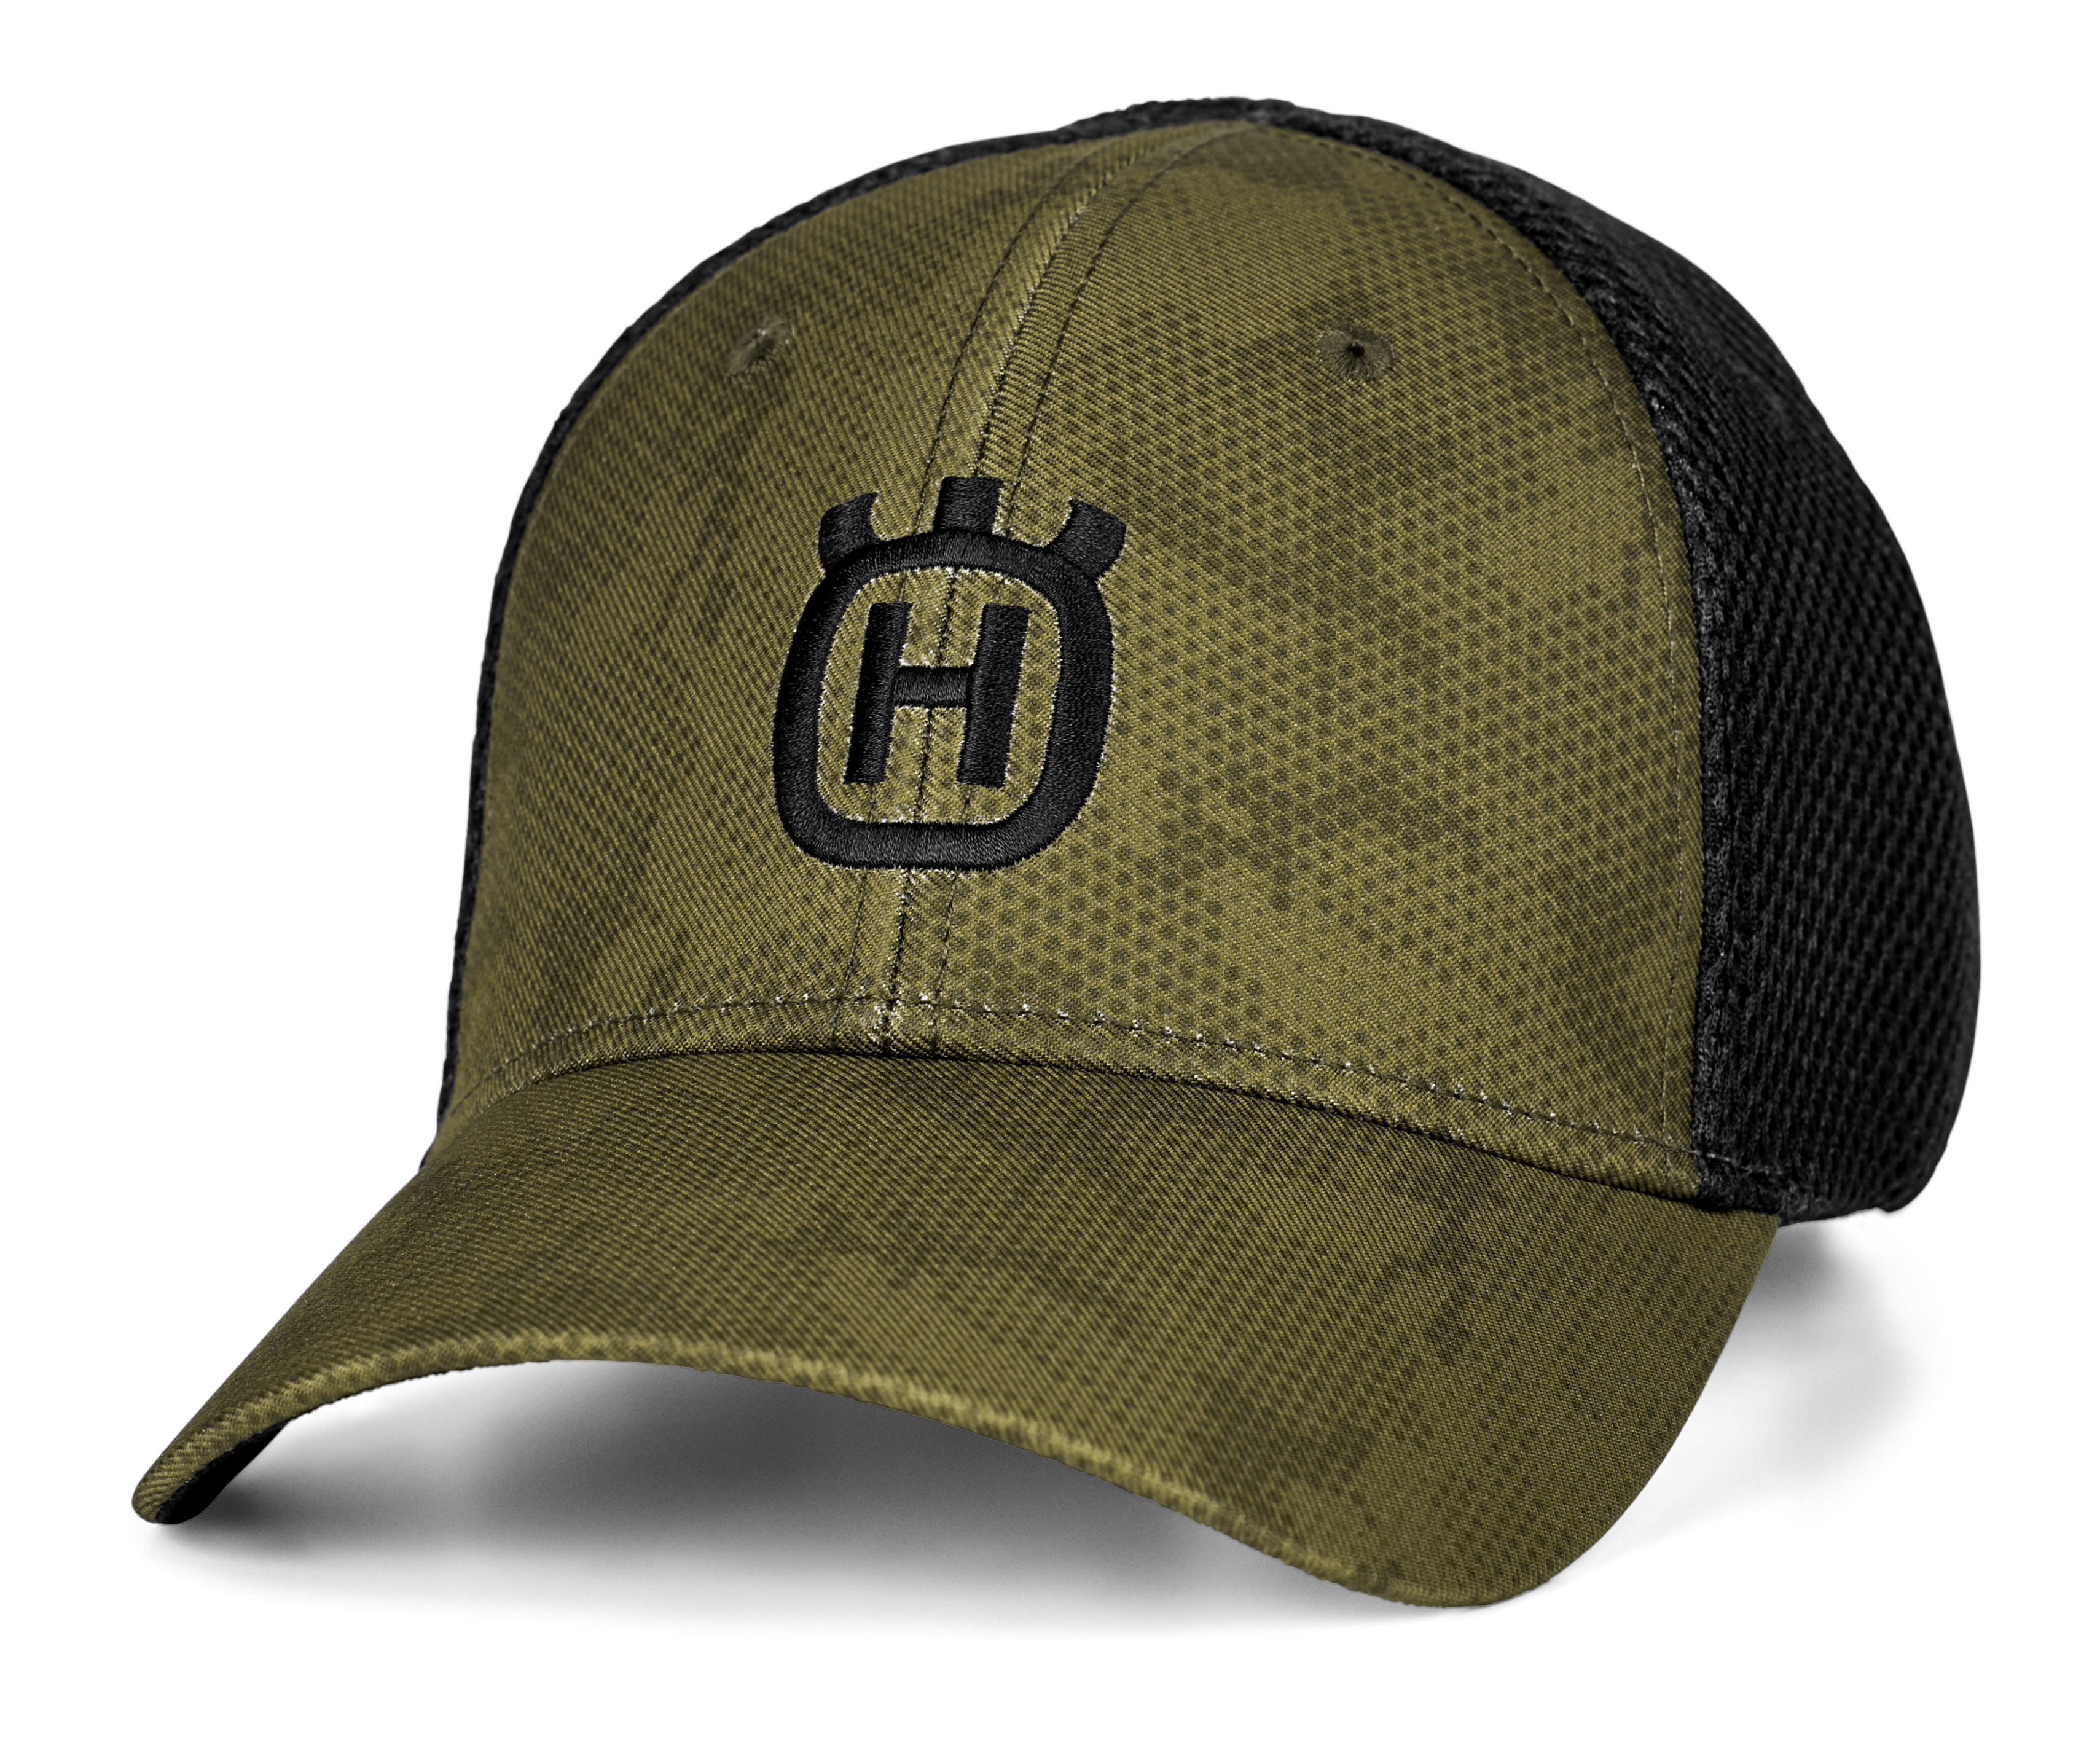 Image for Jakt Hat from HusqvarnaB2C